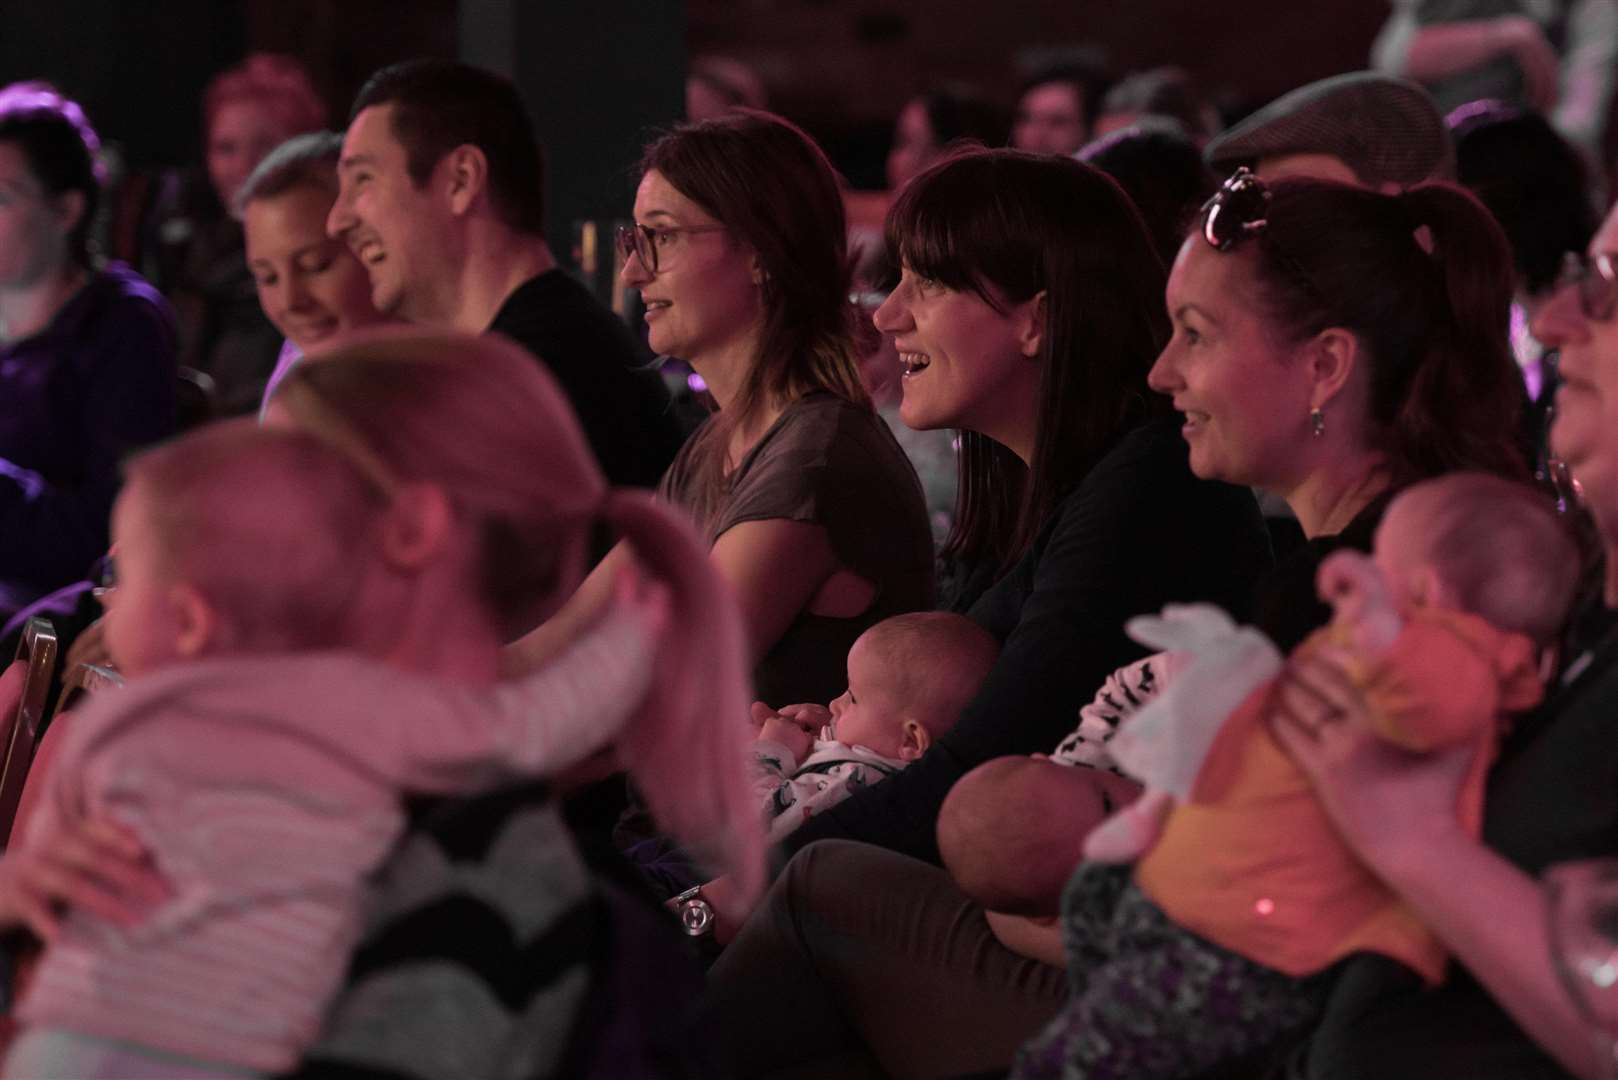 The comedians performing their usual adult material at BYOB events, which is why there's a 12 month age limit for babies